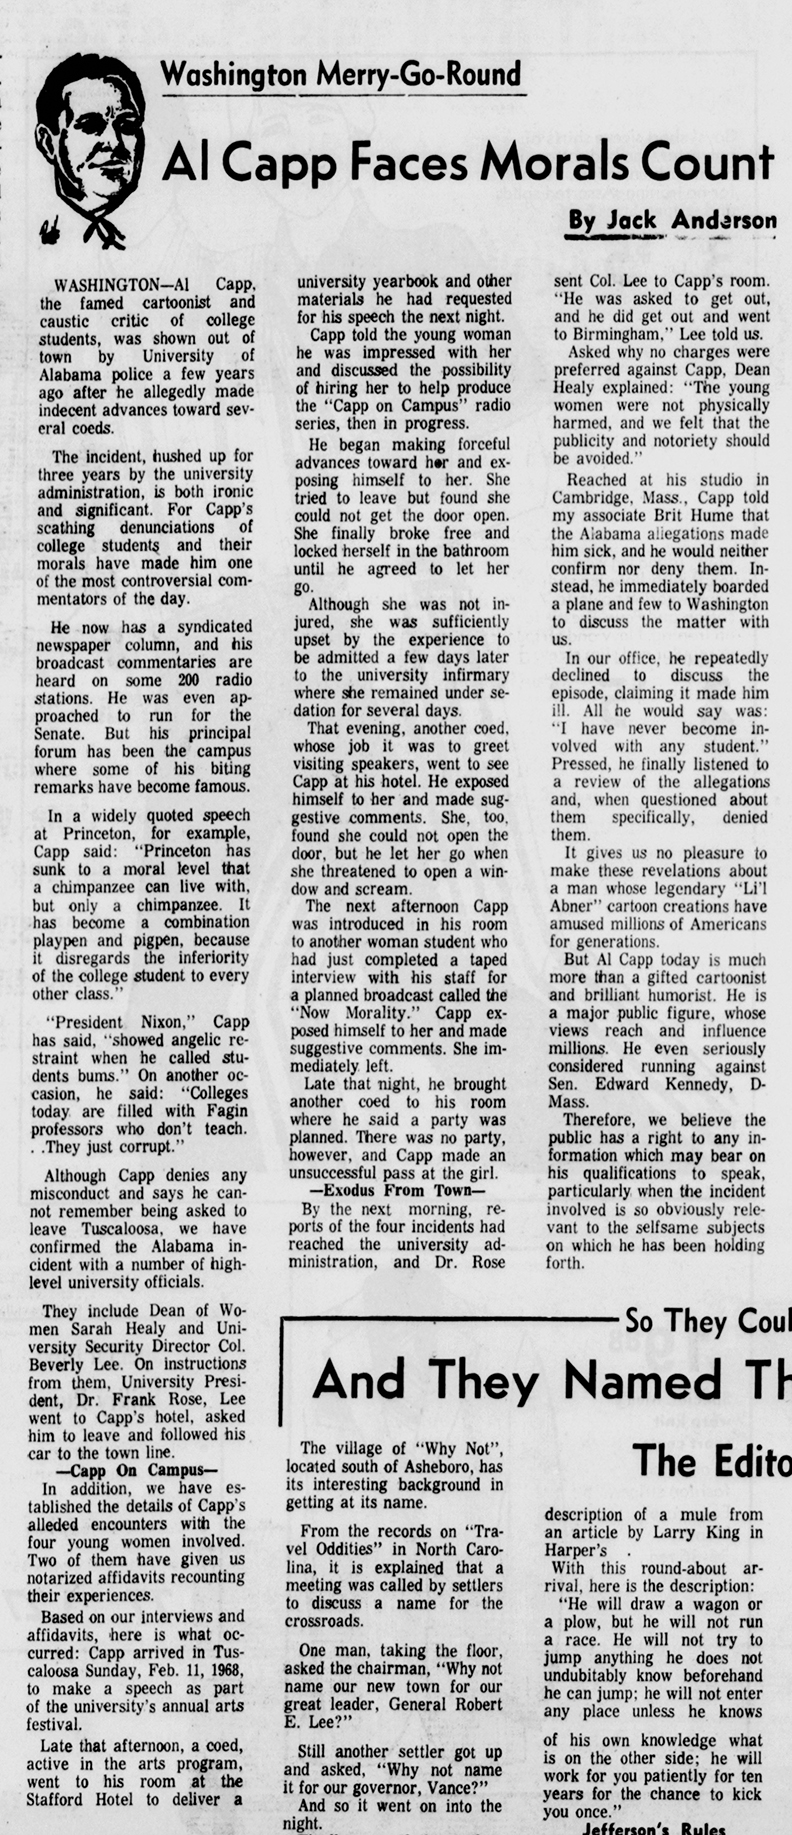 The 1968 newspaper column that brought nationwide attention to Capp's behavior with coeds in Alabama.